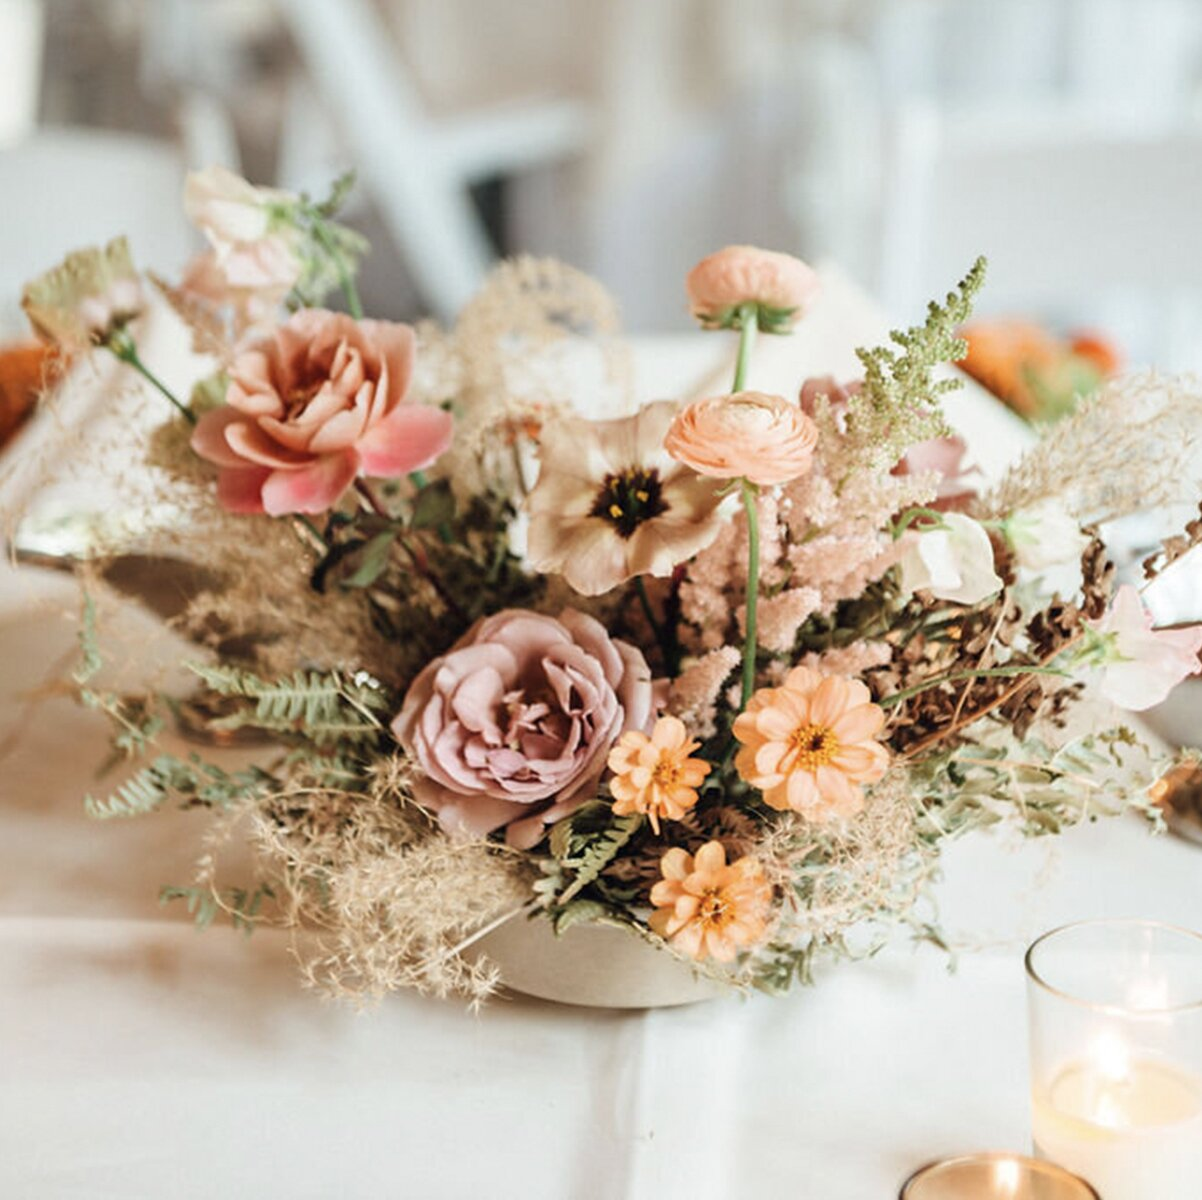 wedding-flowers-florist-sydney-reception-centrepiece-packages-prices-dried-boho-roses